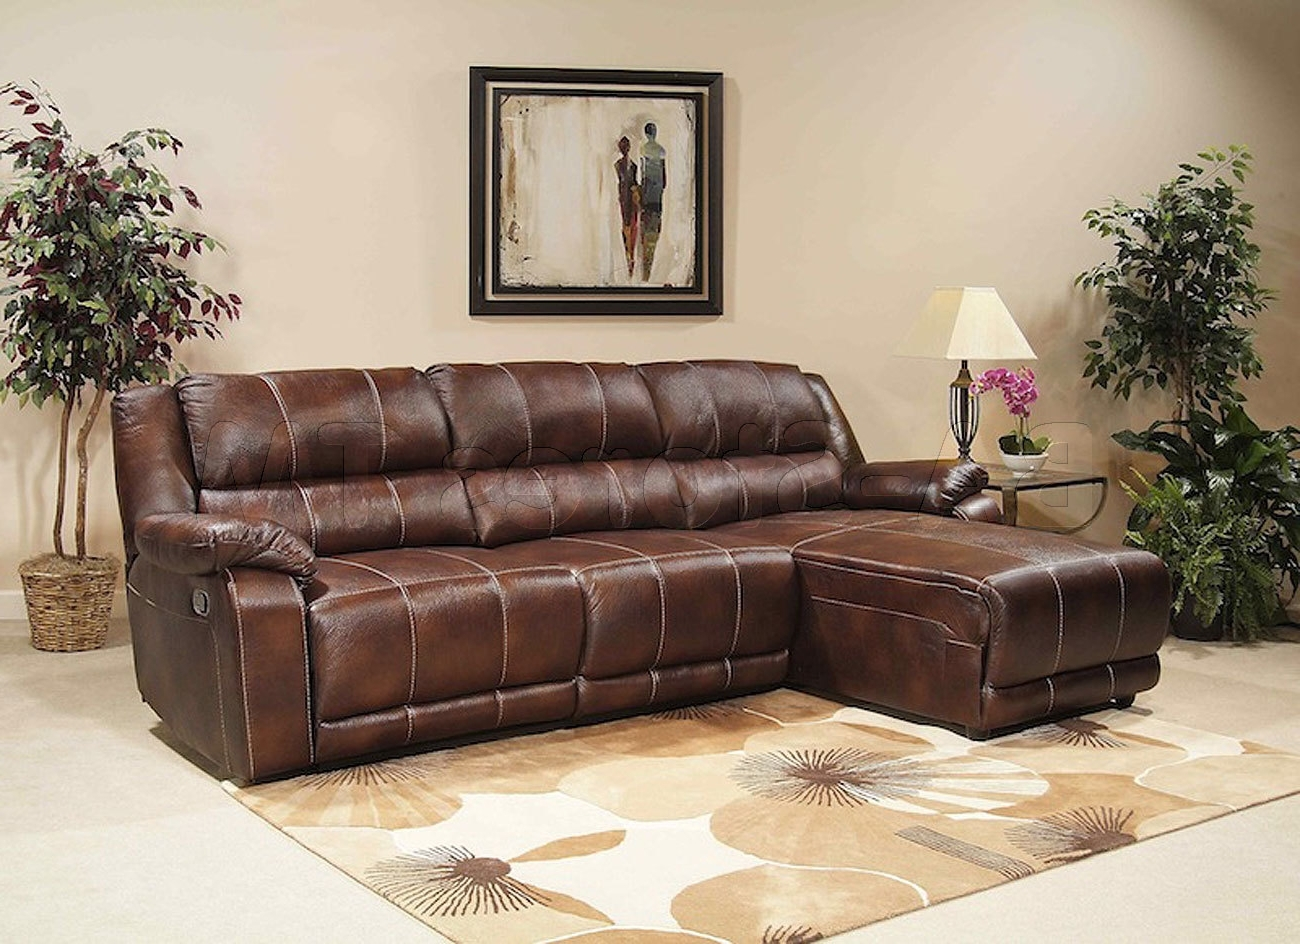 Fashionable Sectional Sofa Design: Affordabale Sectional Reclining Sofa With Inside Couches With Chaise And Recliner (View 7 of 15)